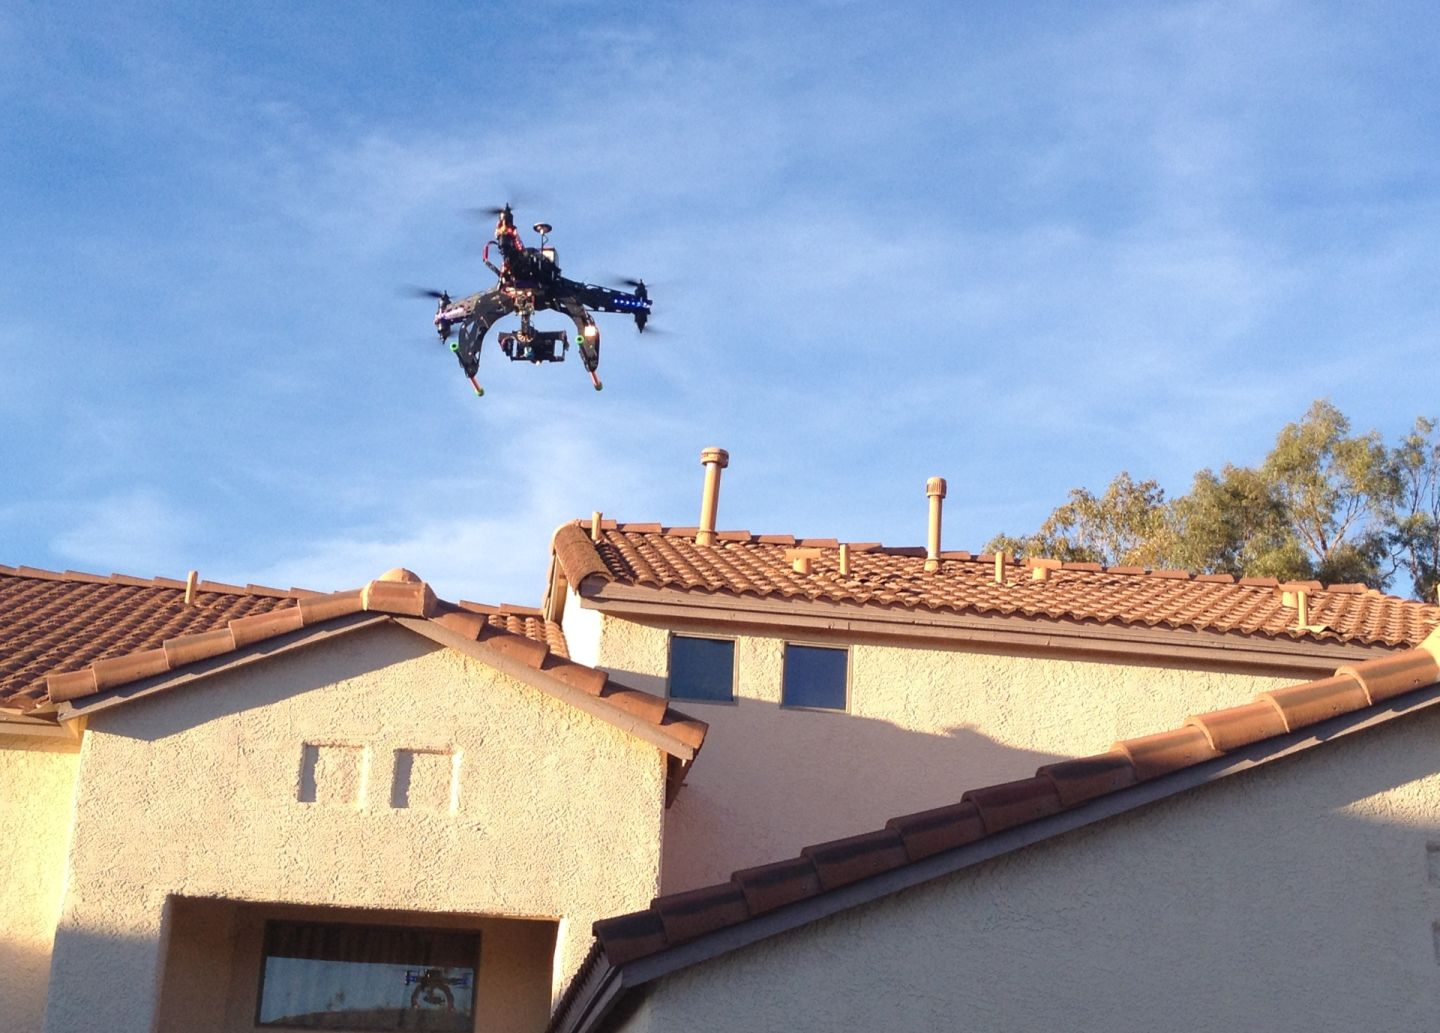 Police Drones Public Safety Boon Or Privacy Invasion